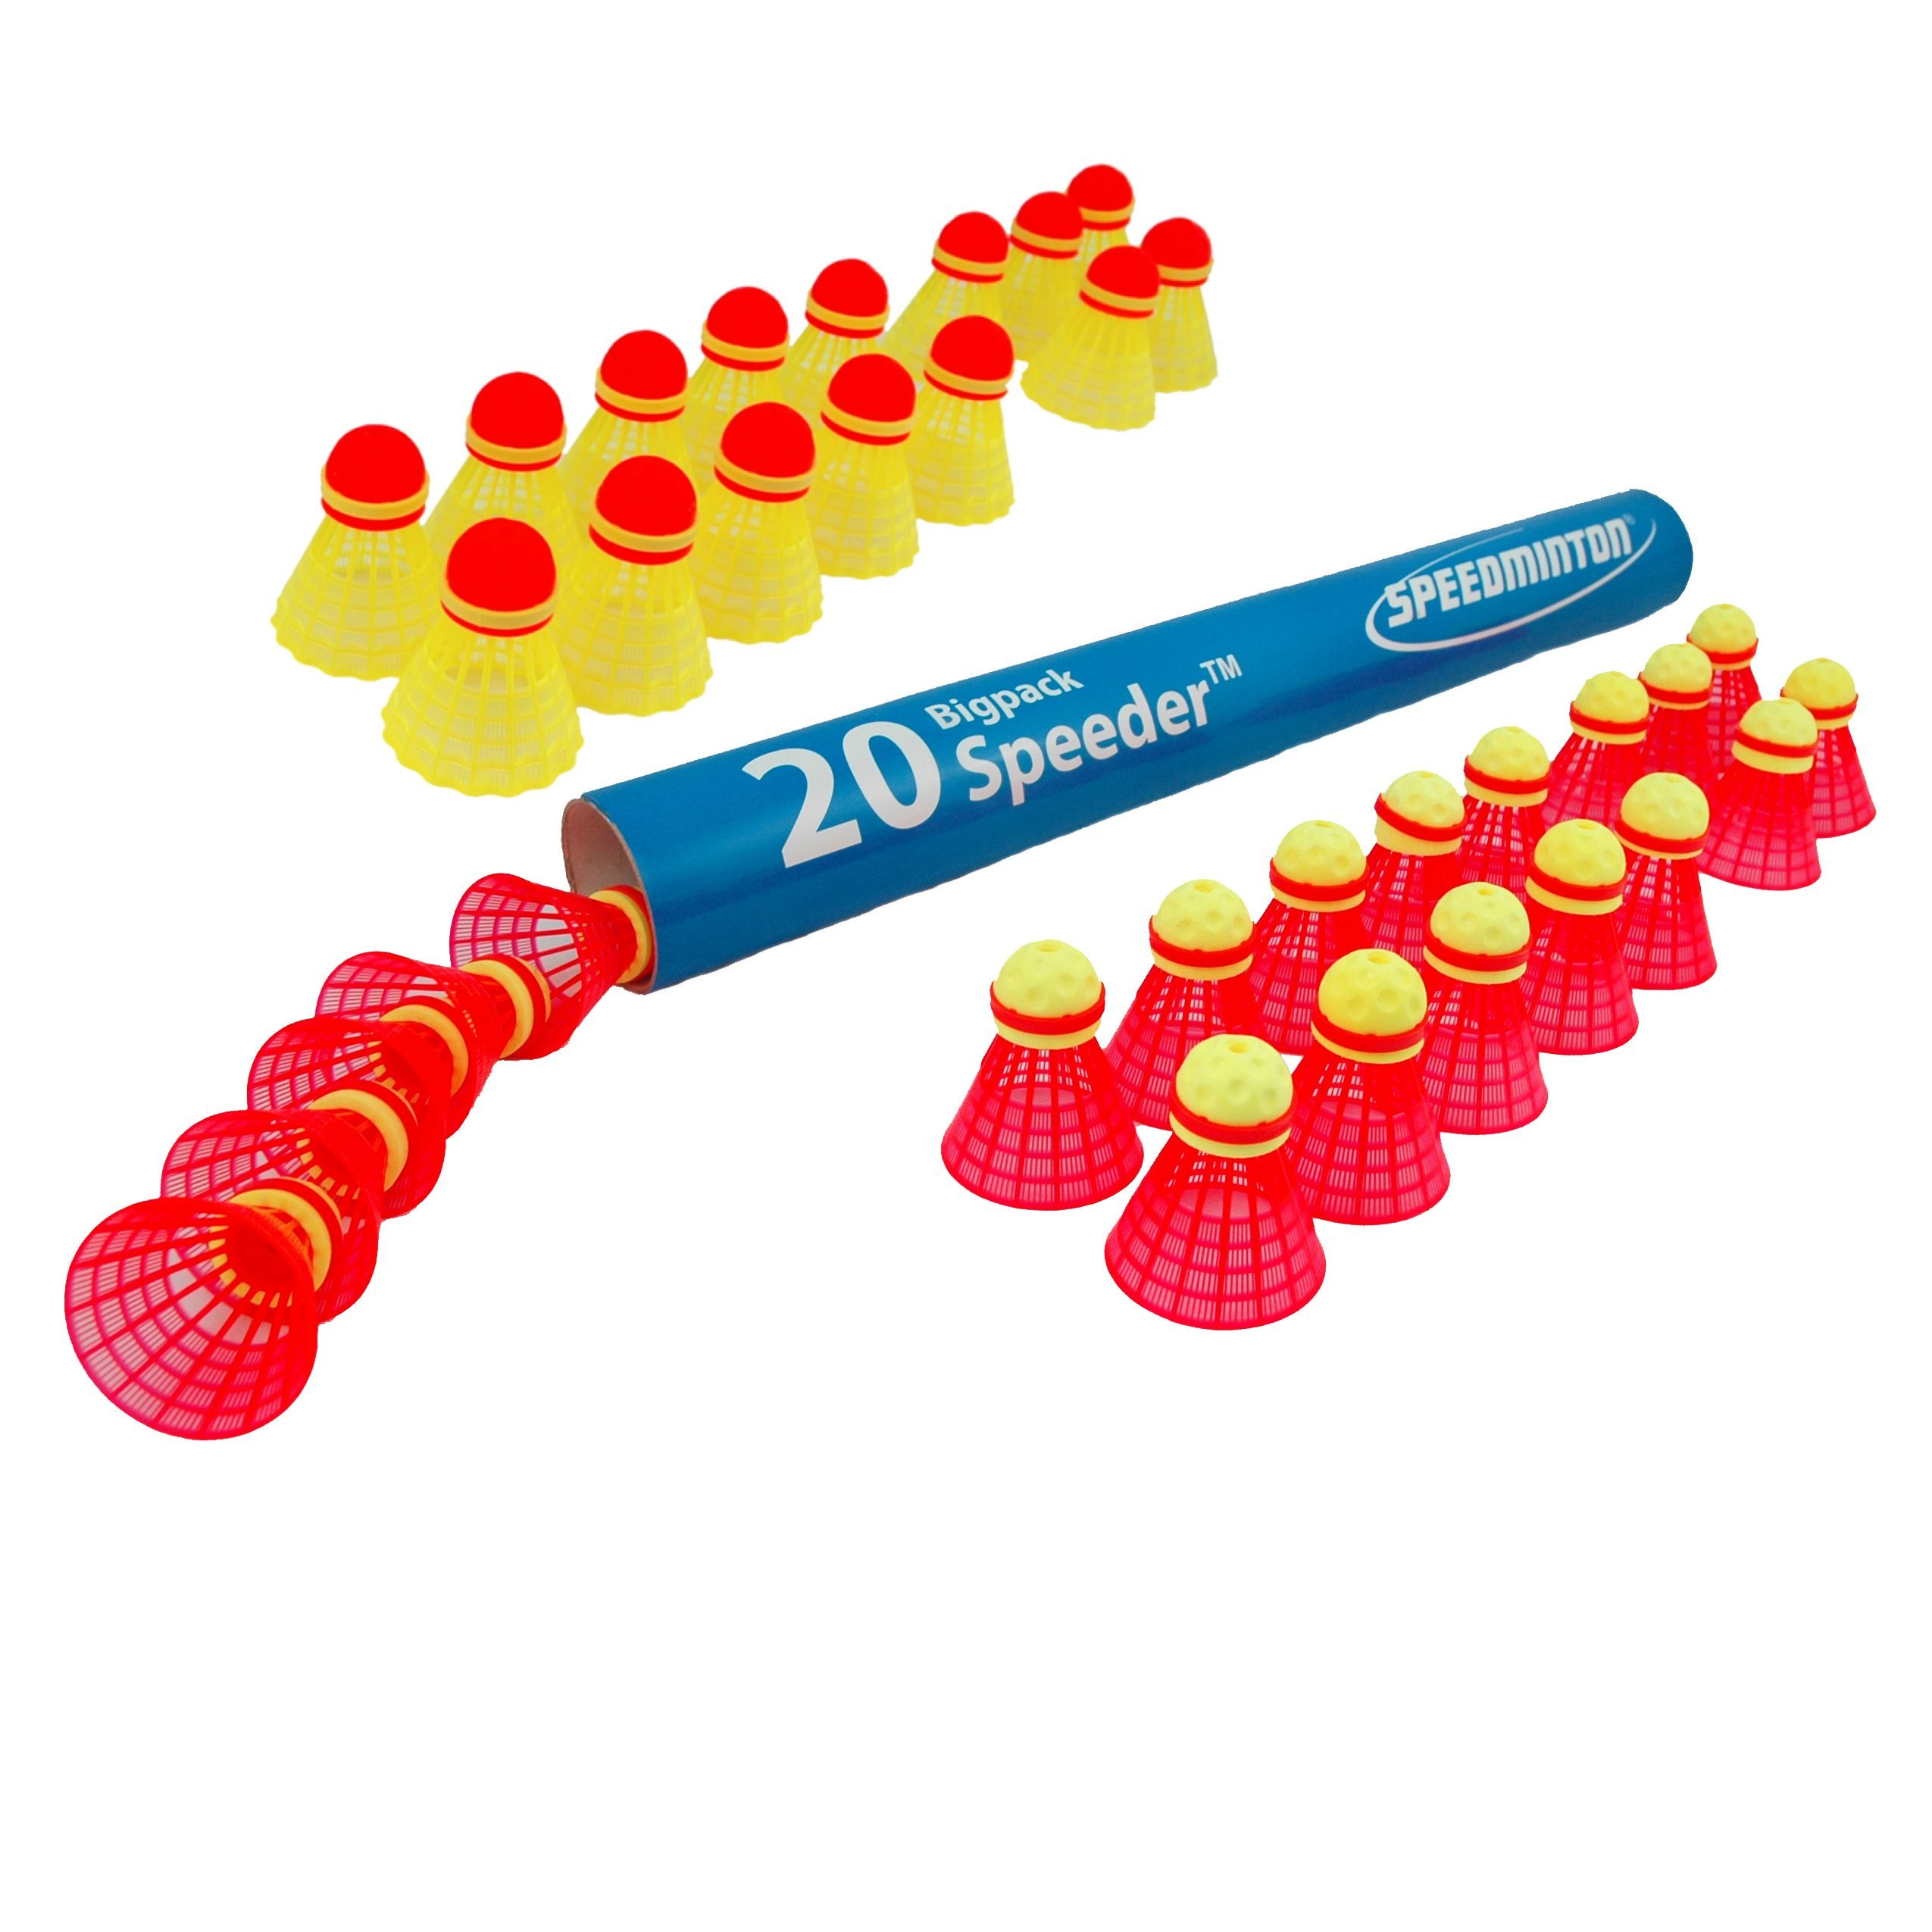 Match and Fun Speeders 20 Pack by Speedminton